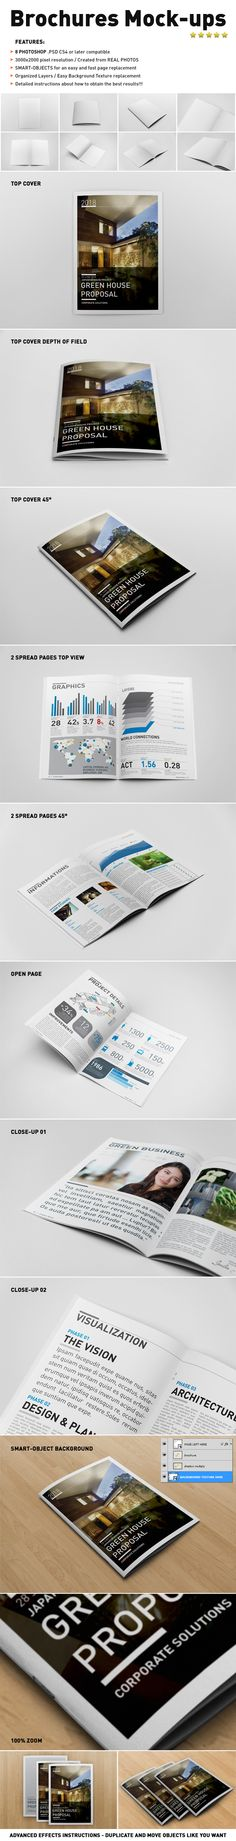 Photorealistic Brochure Mock-ups Templates by Andrea Balzano, via Behance